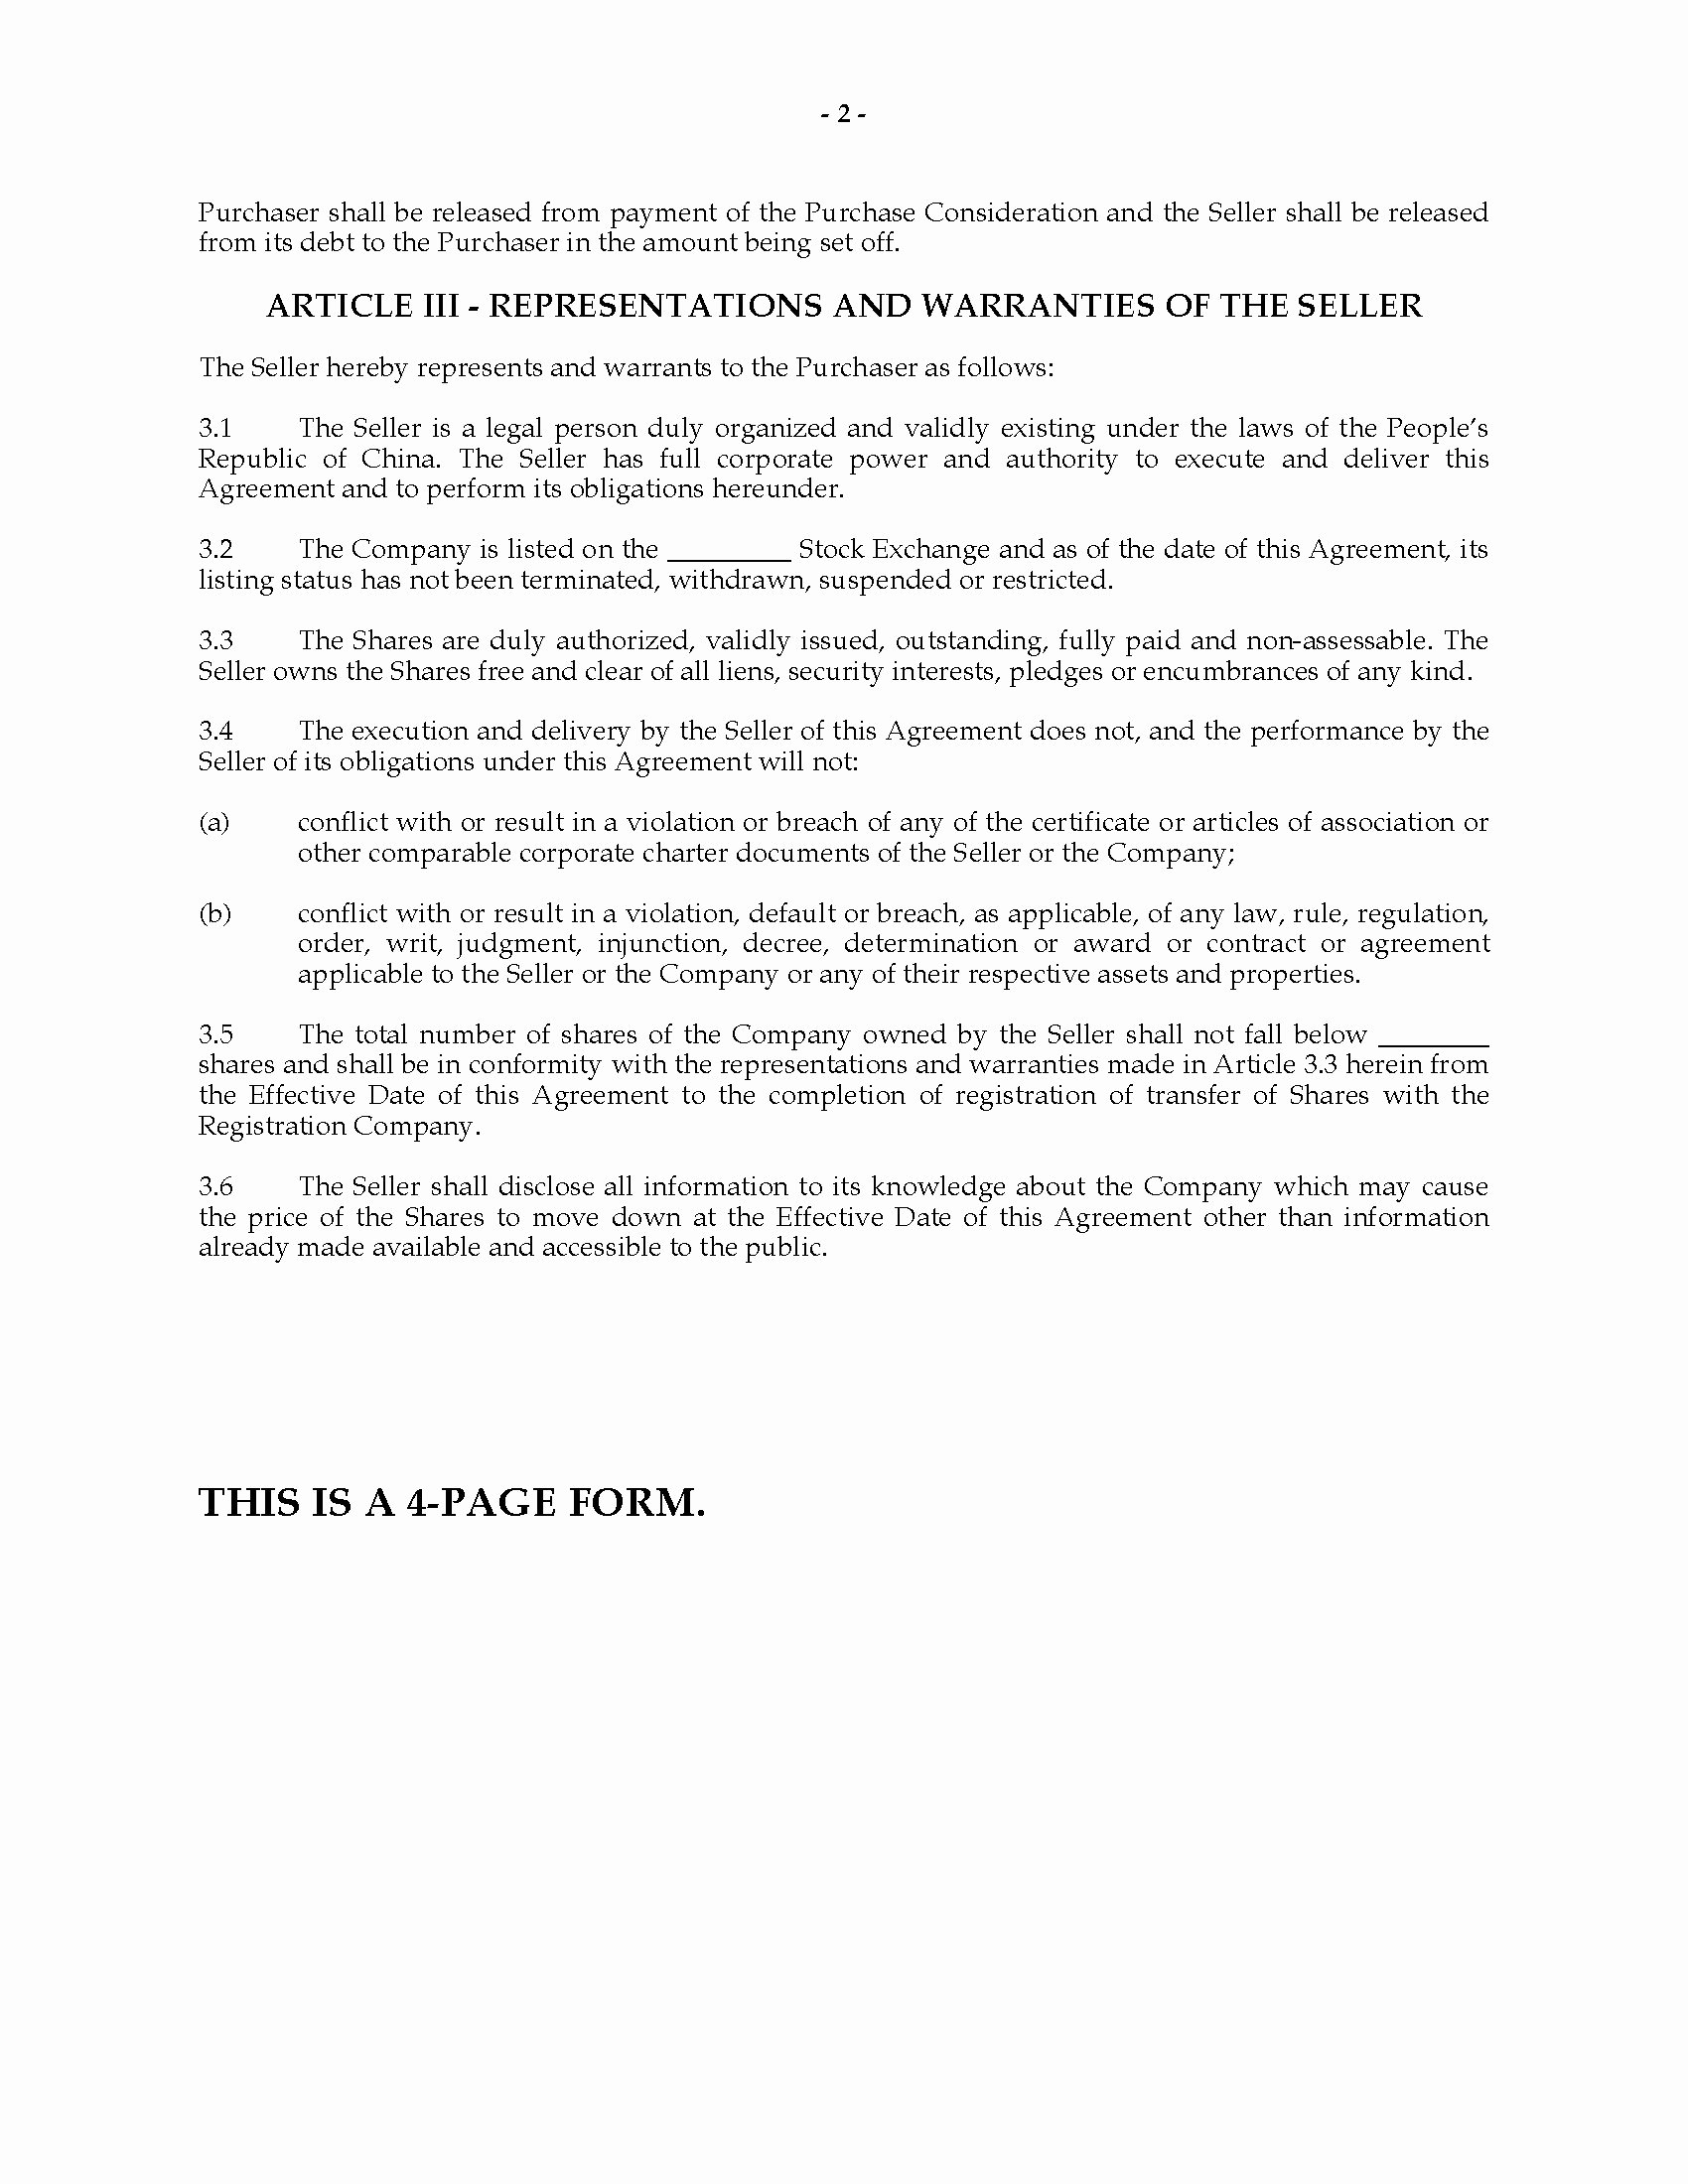 Stock Purchase Agreement Template Fresh China Stock Purchase Agreement